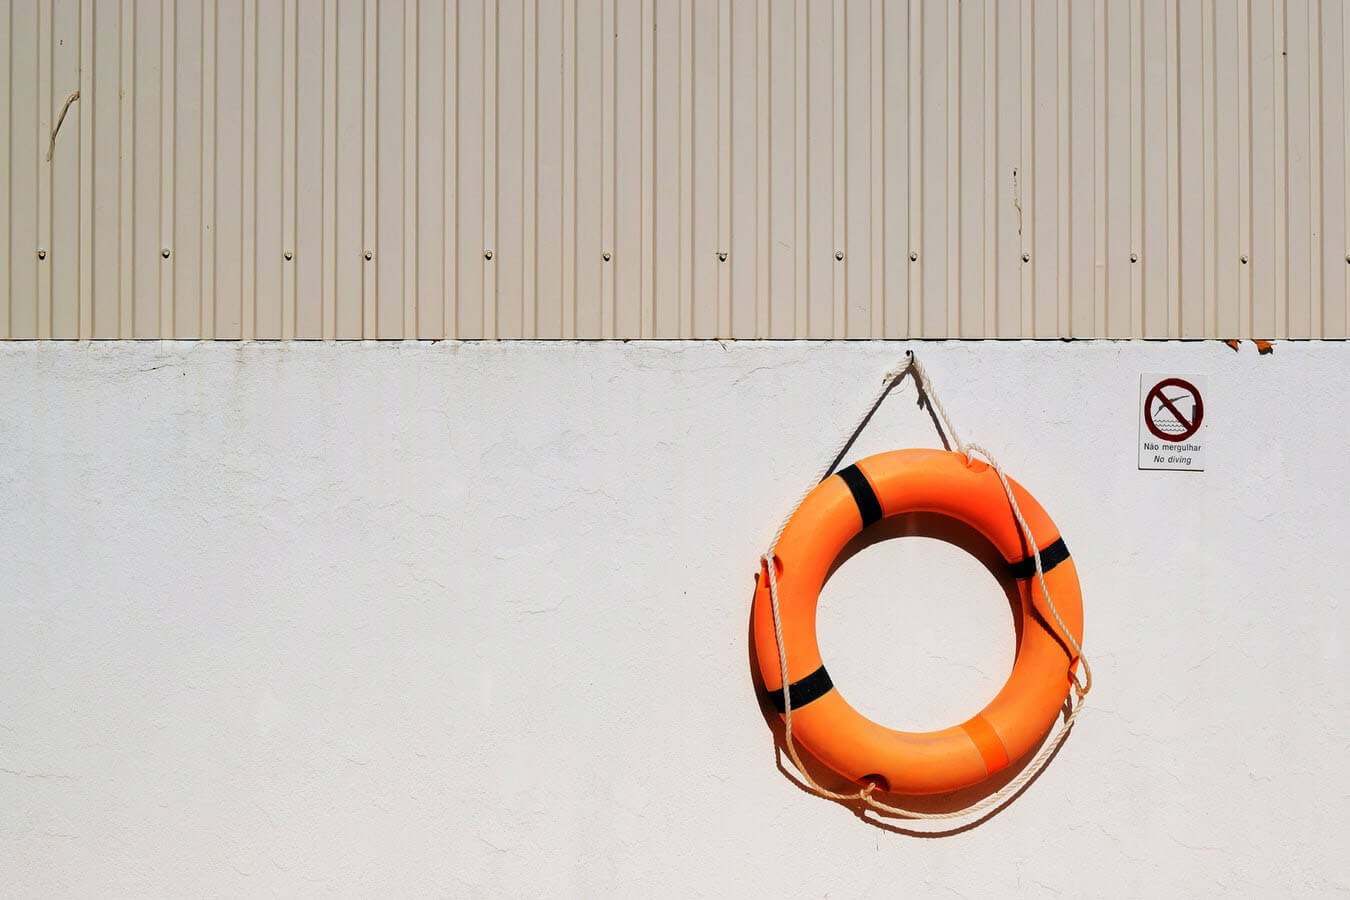 Image of an orange life raft hanging on a wall